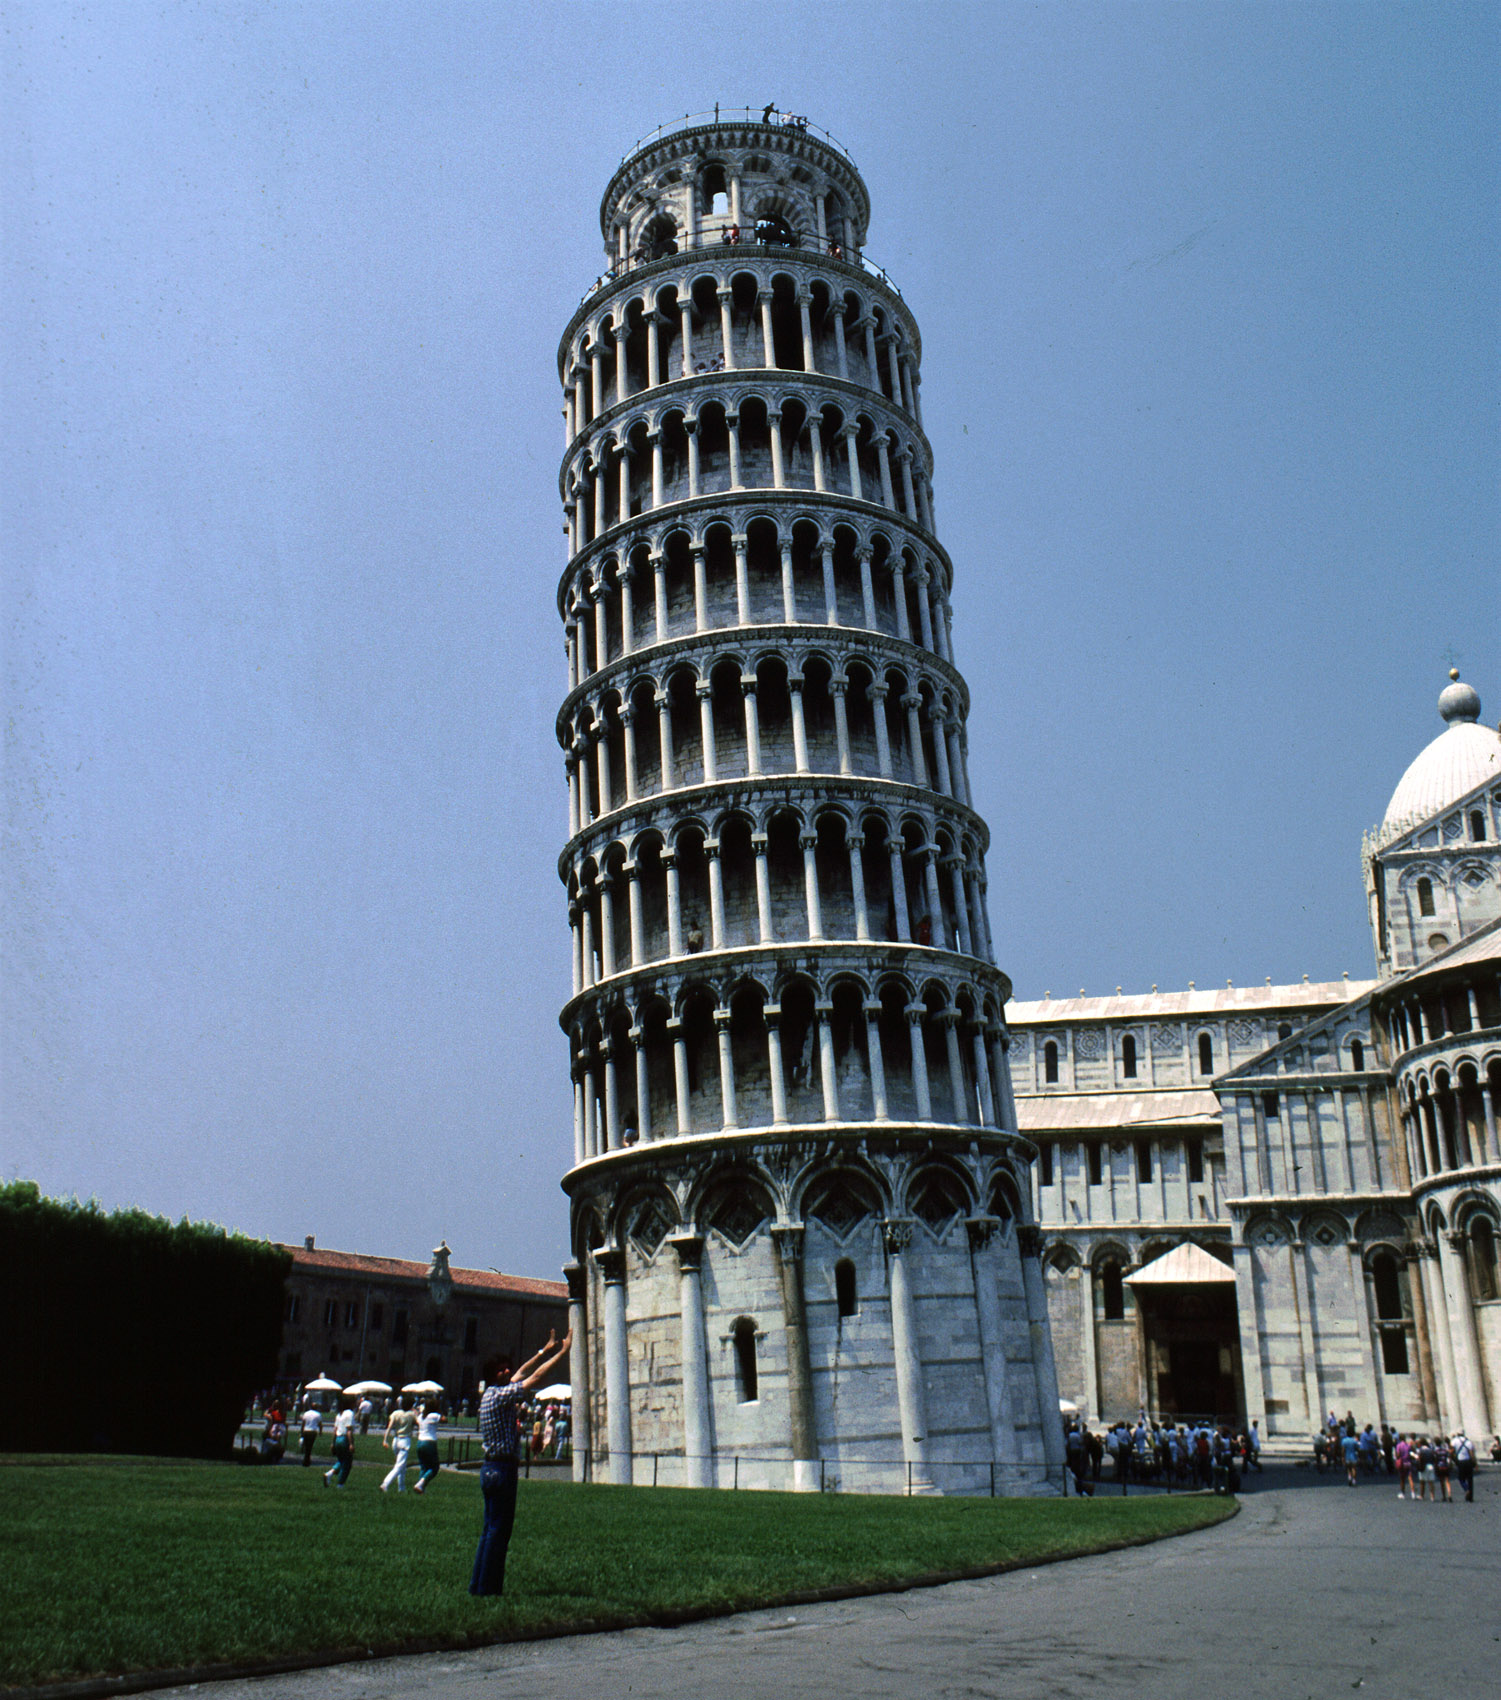 Leaning tower of pisa italy the leaning tower of pisa is a